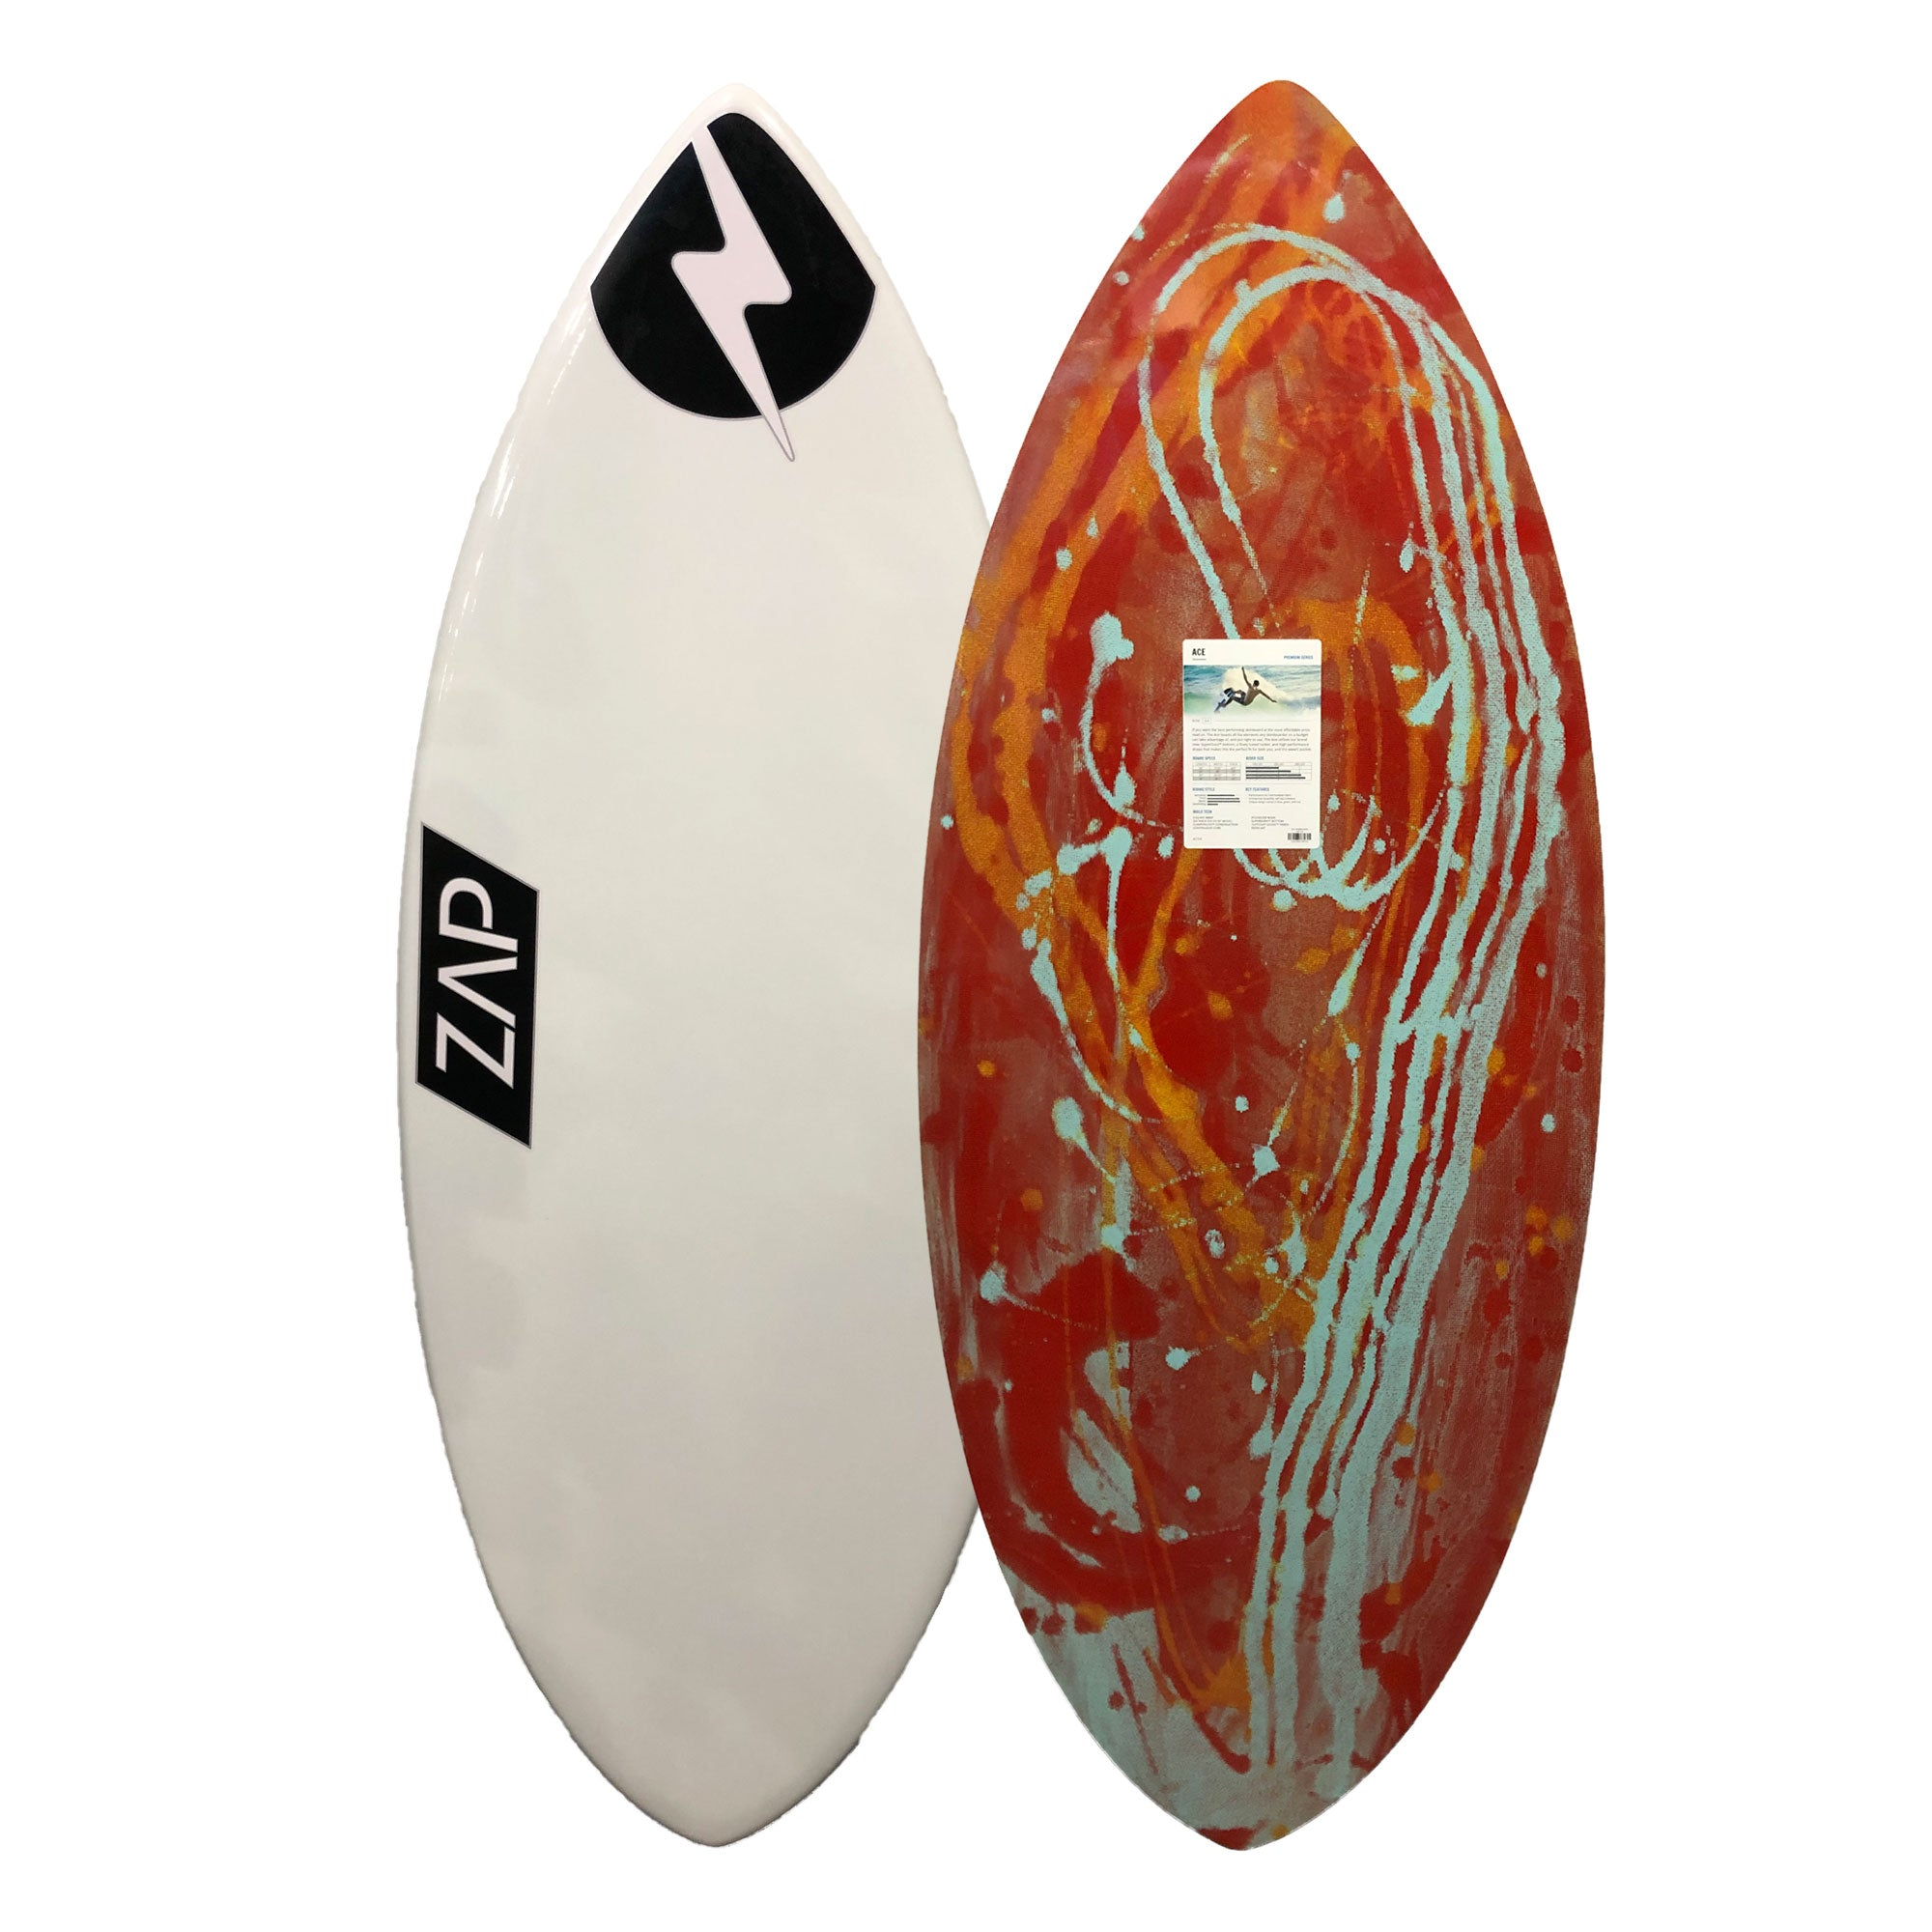 "Zap Ace 54"" Skimboard - White / Red-Orange-Blue Swirl"